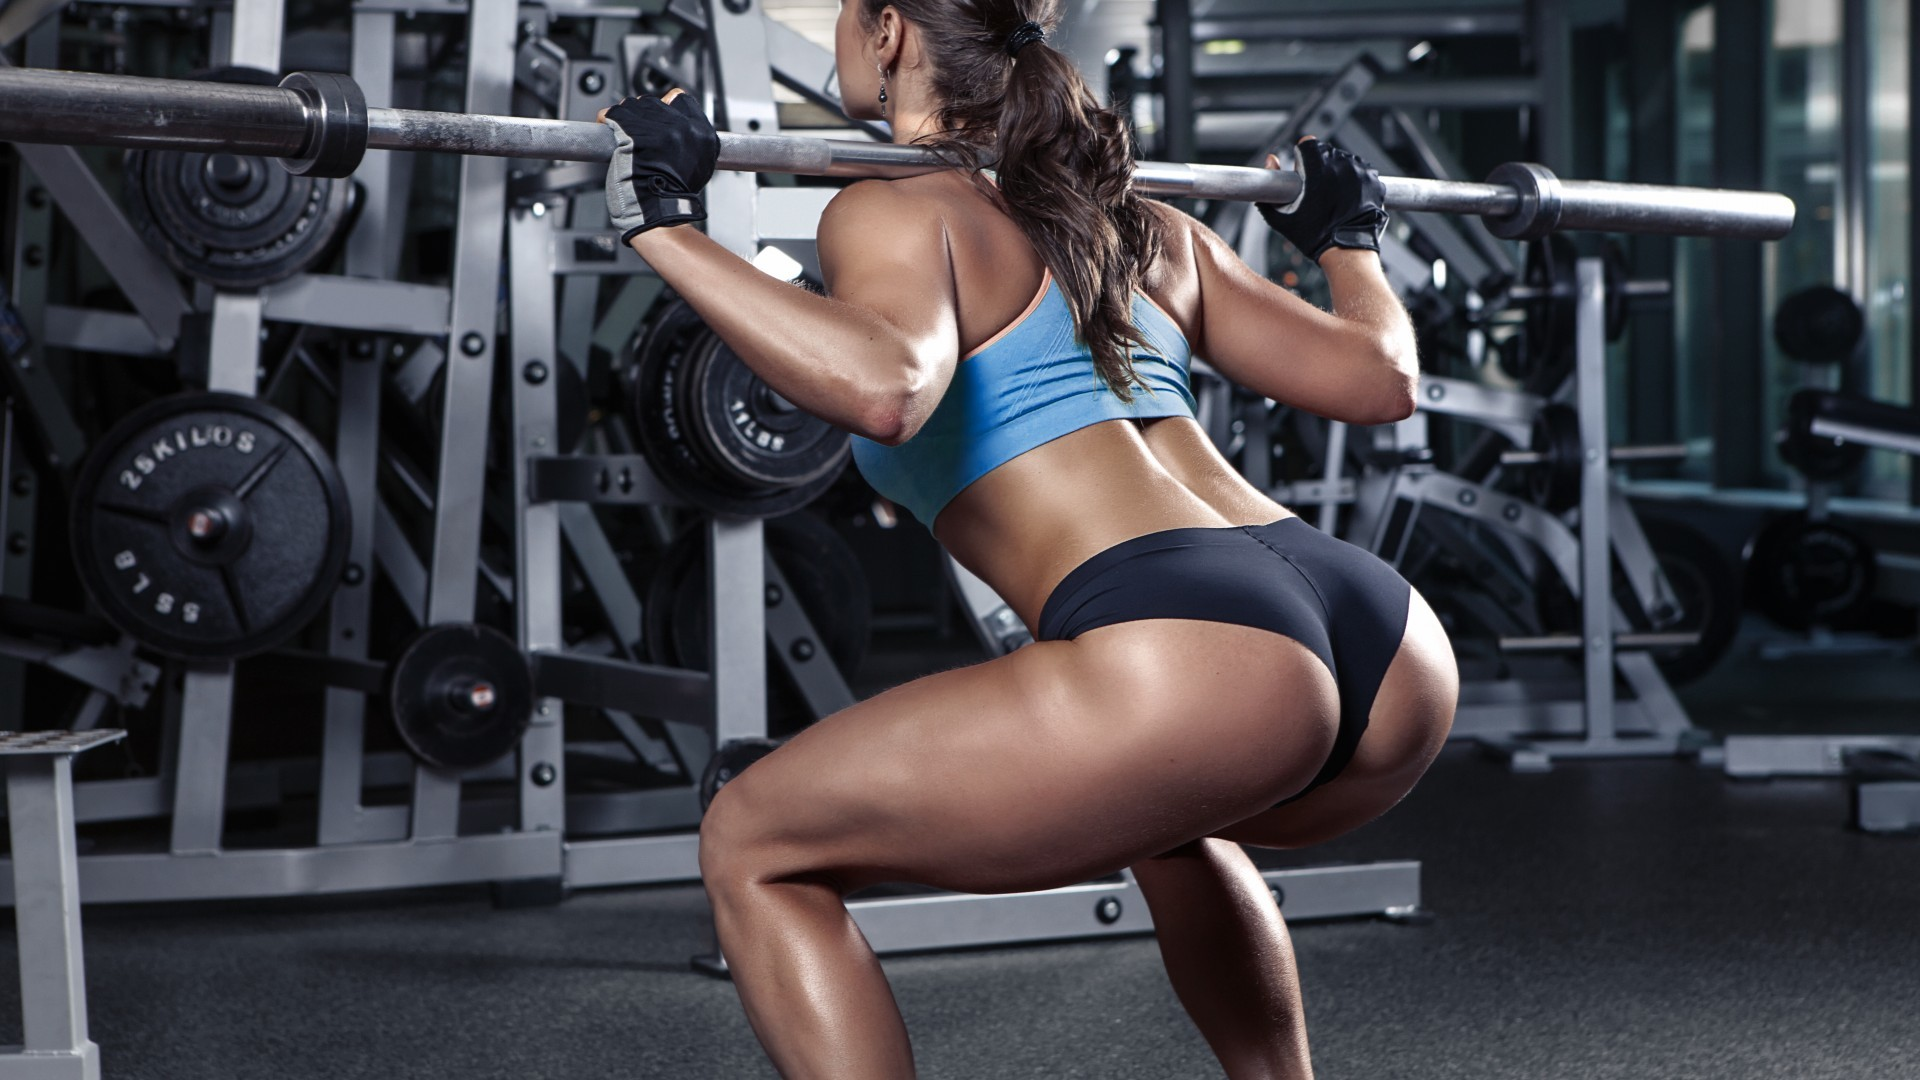 21 PROVEN Reasons EVERY Woman Should Lift Heavy Weights |  ILoveGarciniaCambogia.Net